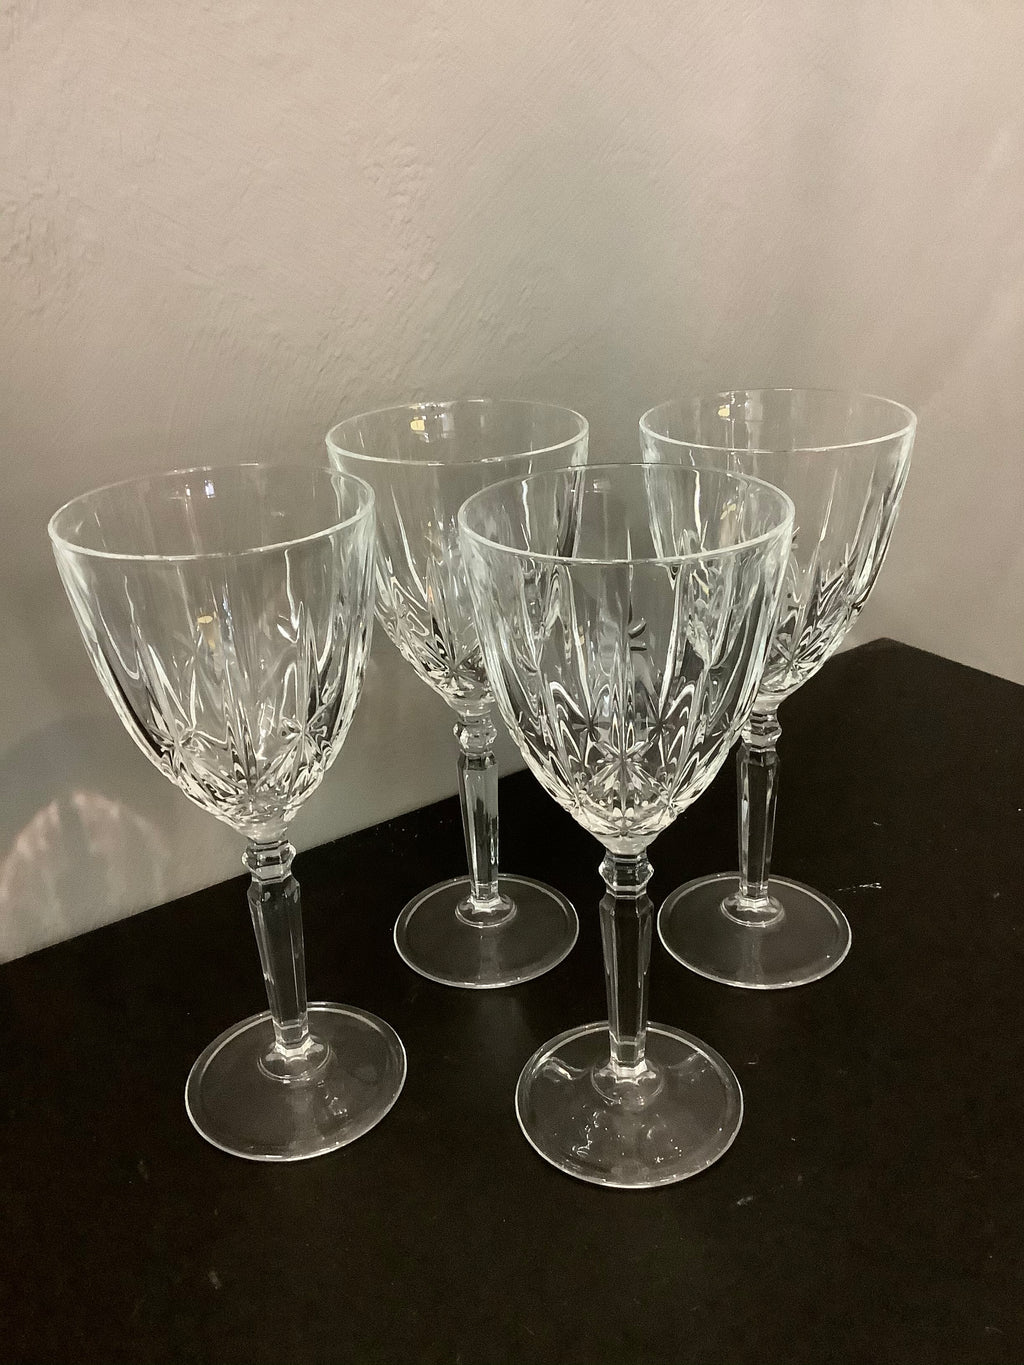 ORCHESTRA WHITE WINE GLASSES